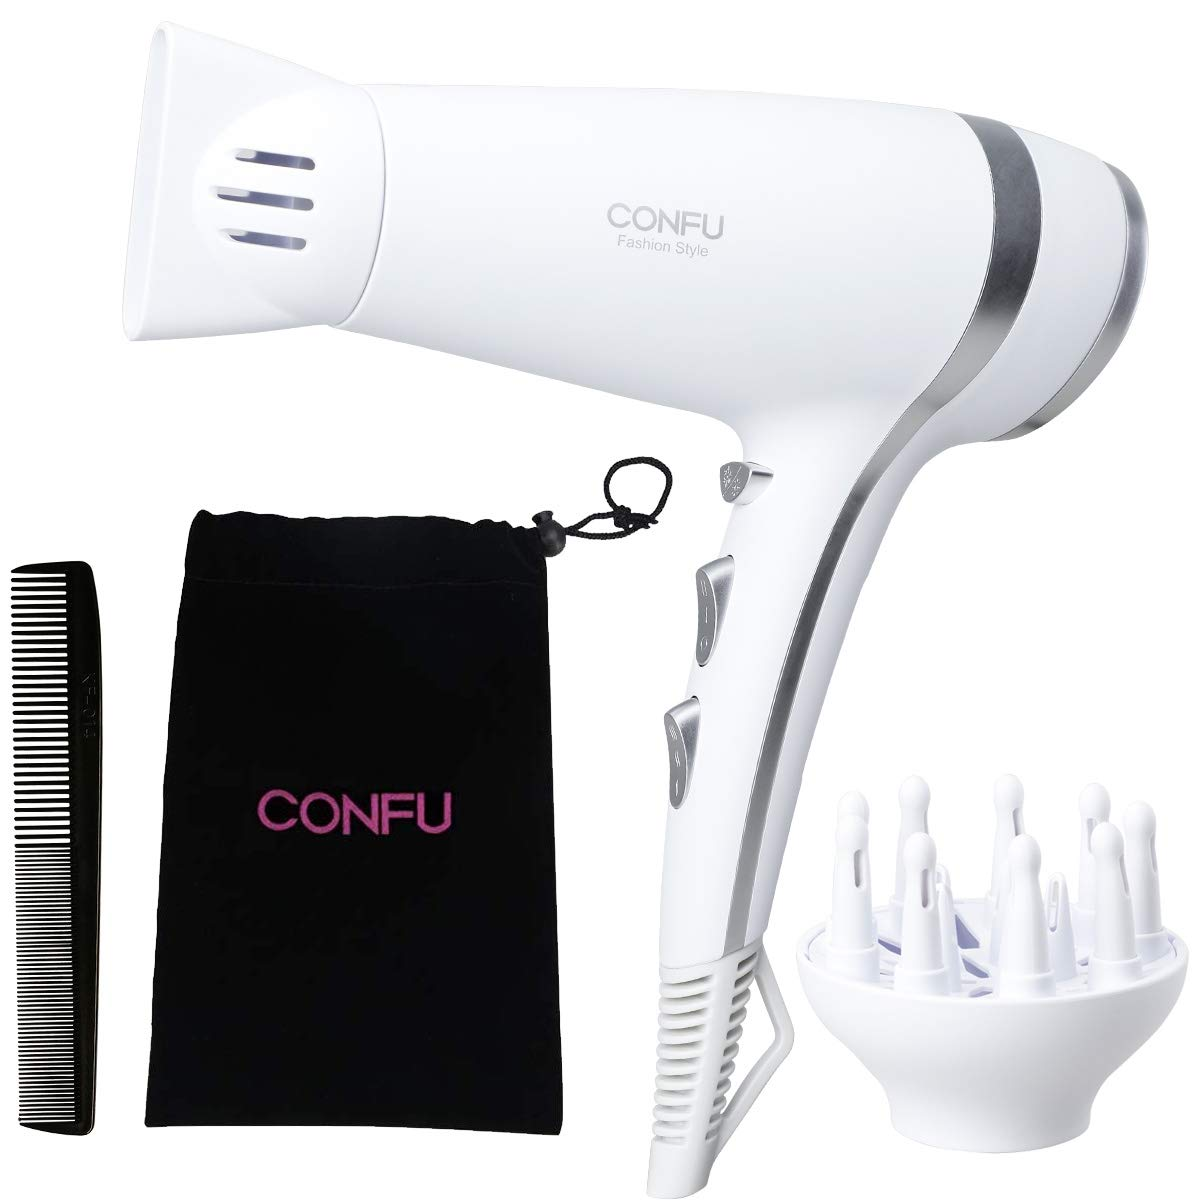 Lightweight Professional Ionic Hair Dryer CONFU 1875W Fast Drying Quiet Blow Dryer with 2 Speed 3 Heat Cool Setting Nozzle Diffuser Hairdryers Bag ETL Certified White by CONFU